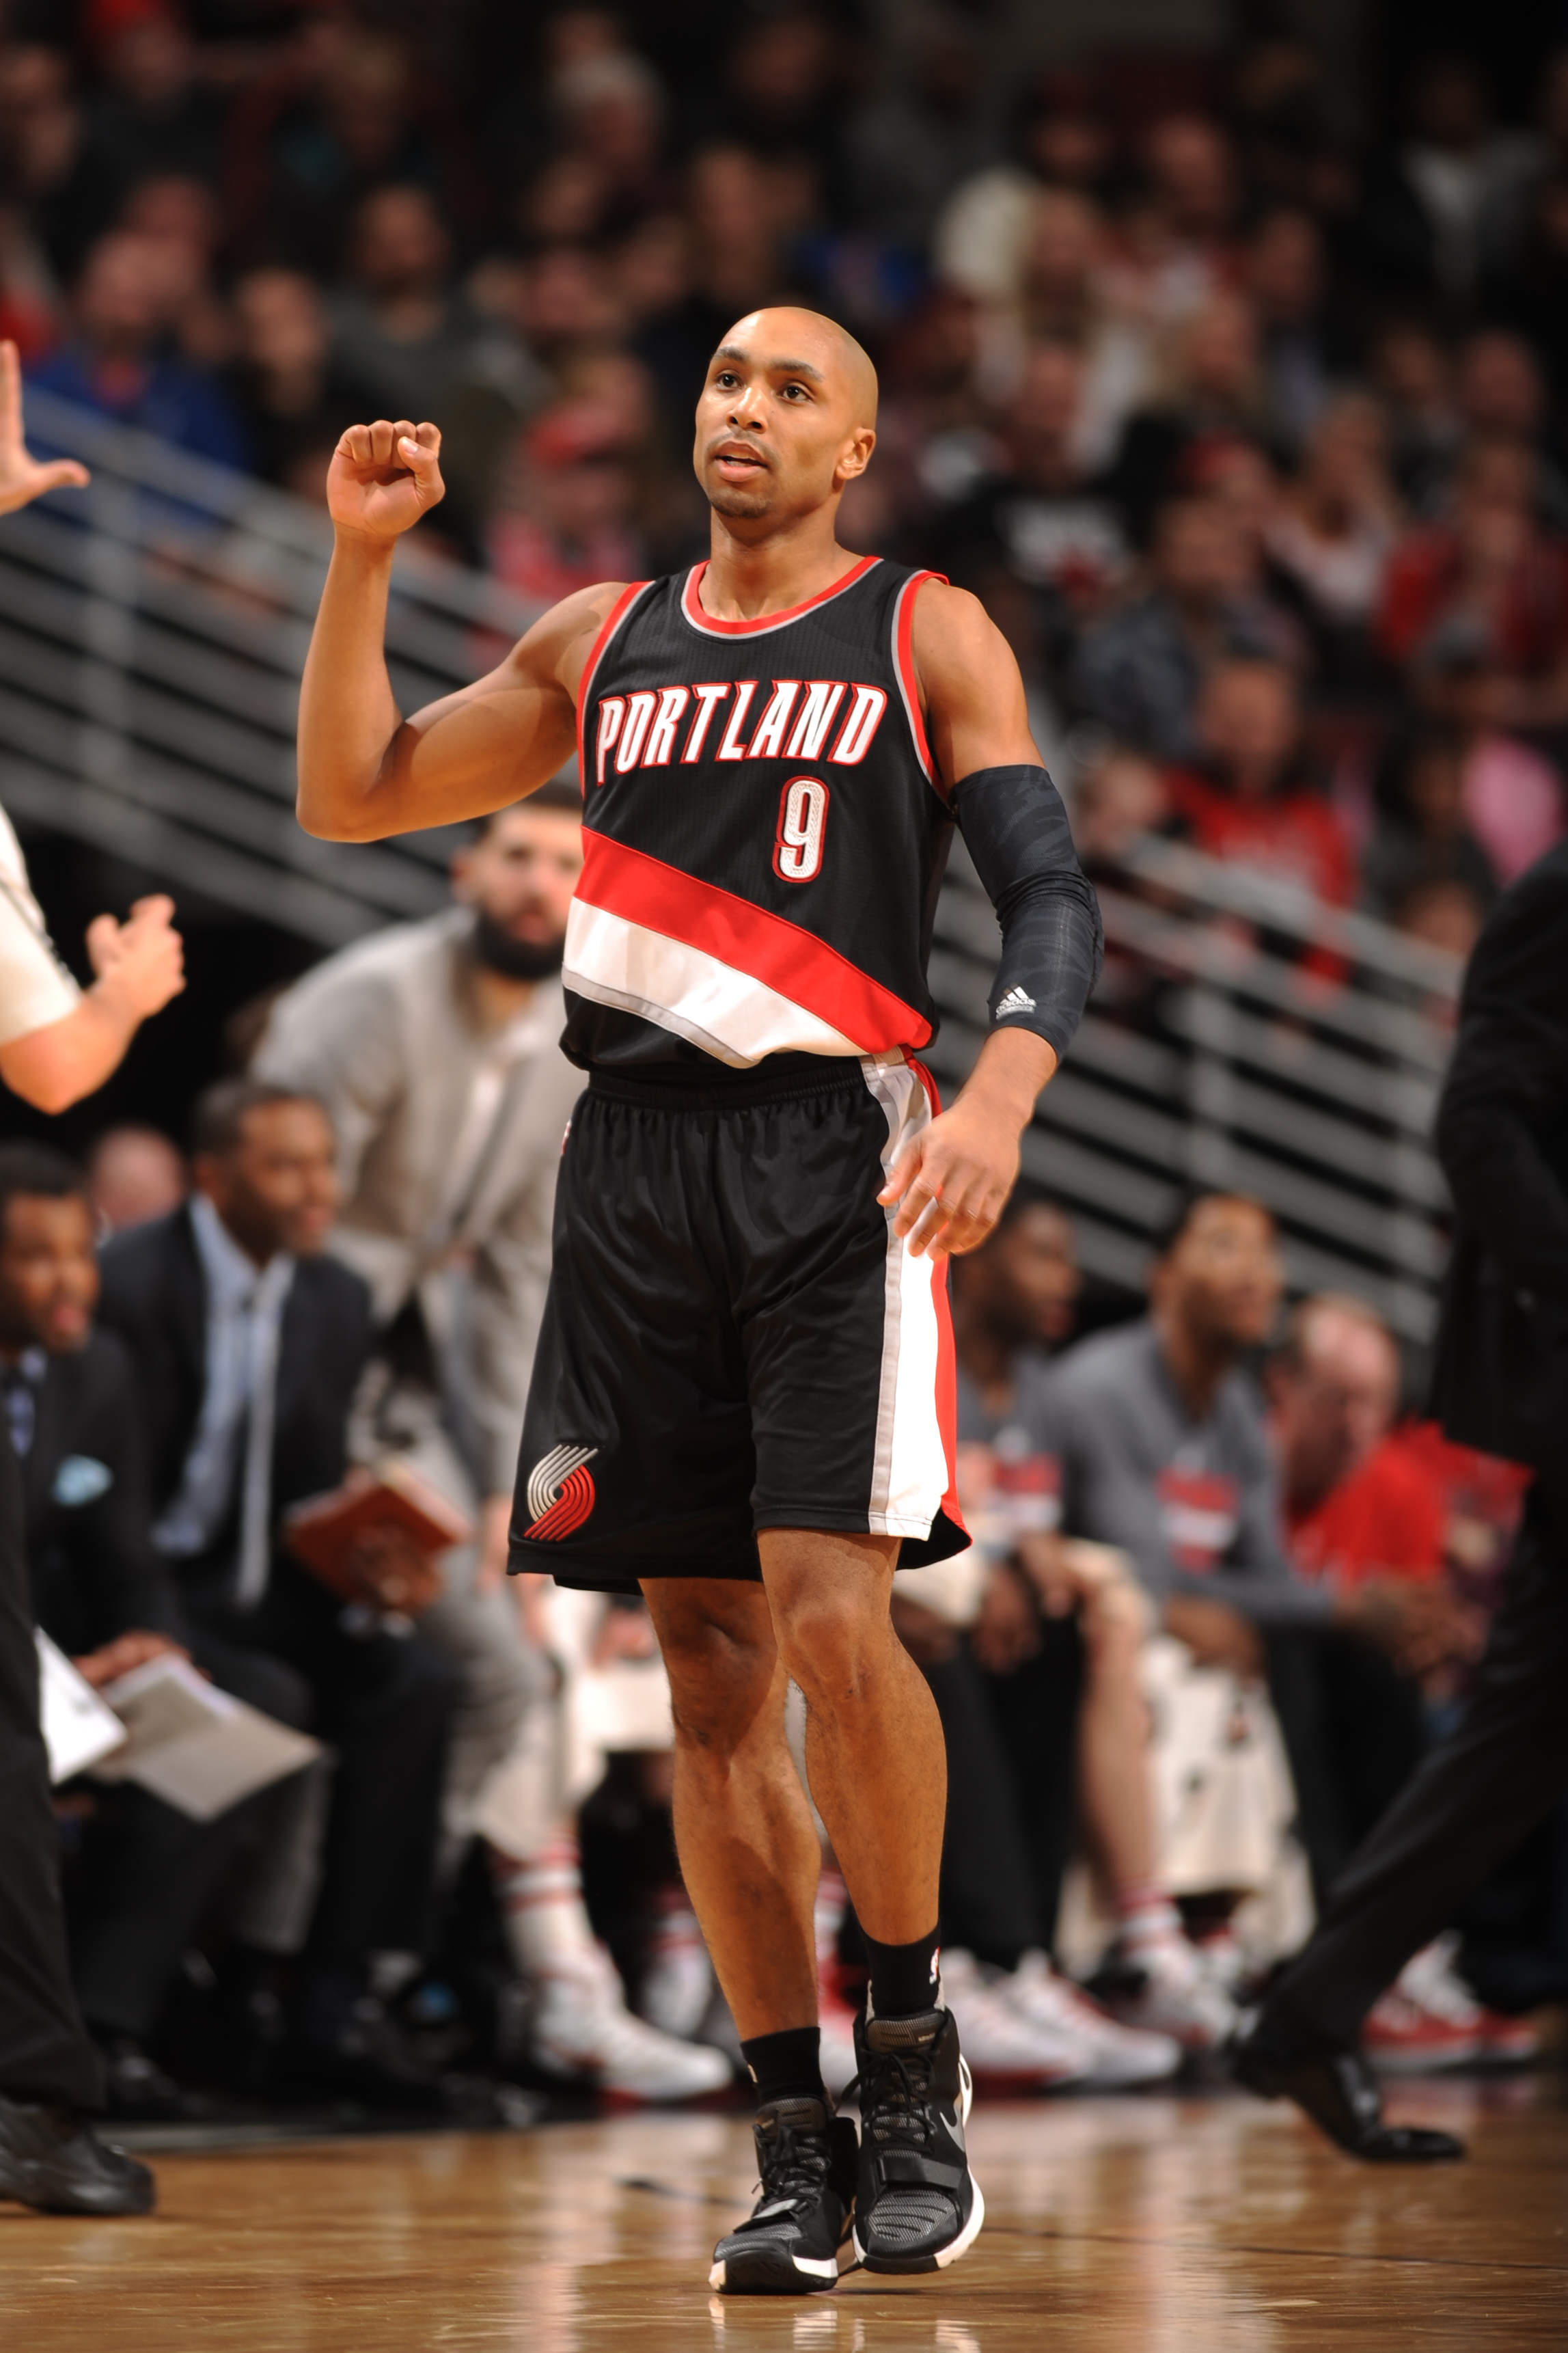 CHICAGO, IL - FEBRUARY 27: Damian Lillard #0 of the Portland Trail Blazers celebrates after a play against the Chicago Bulls during the game on February 27, 2016 at United Center in Chicago, Illinois. (Photo by Randy Belice/NBAE via Getty Images)